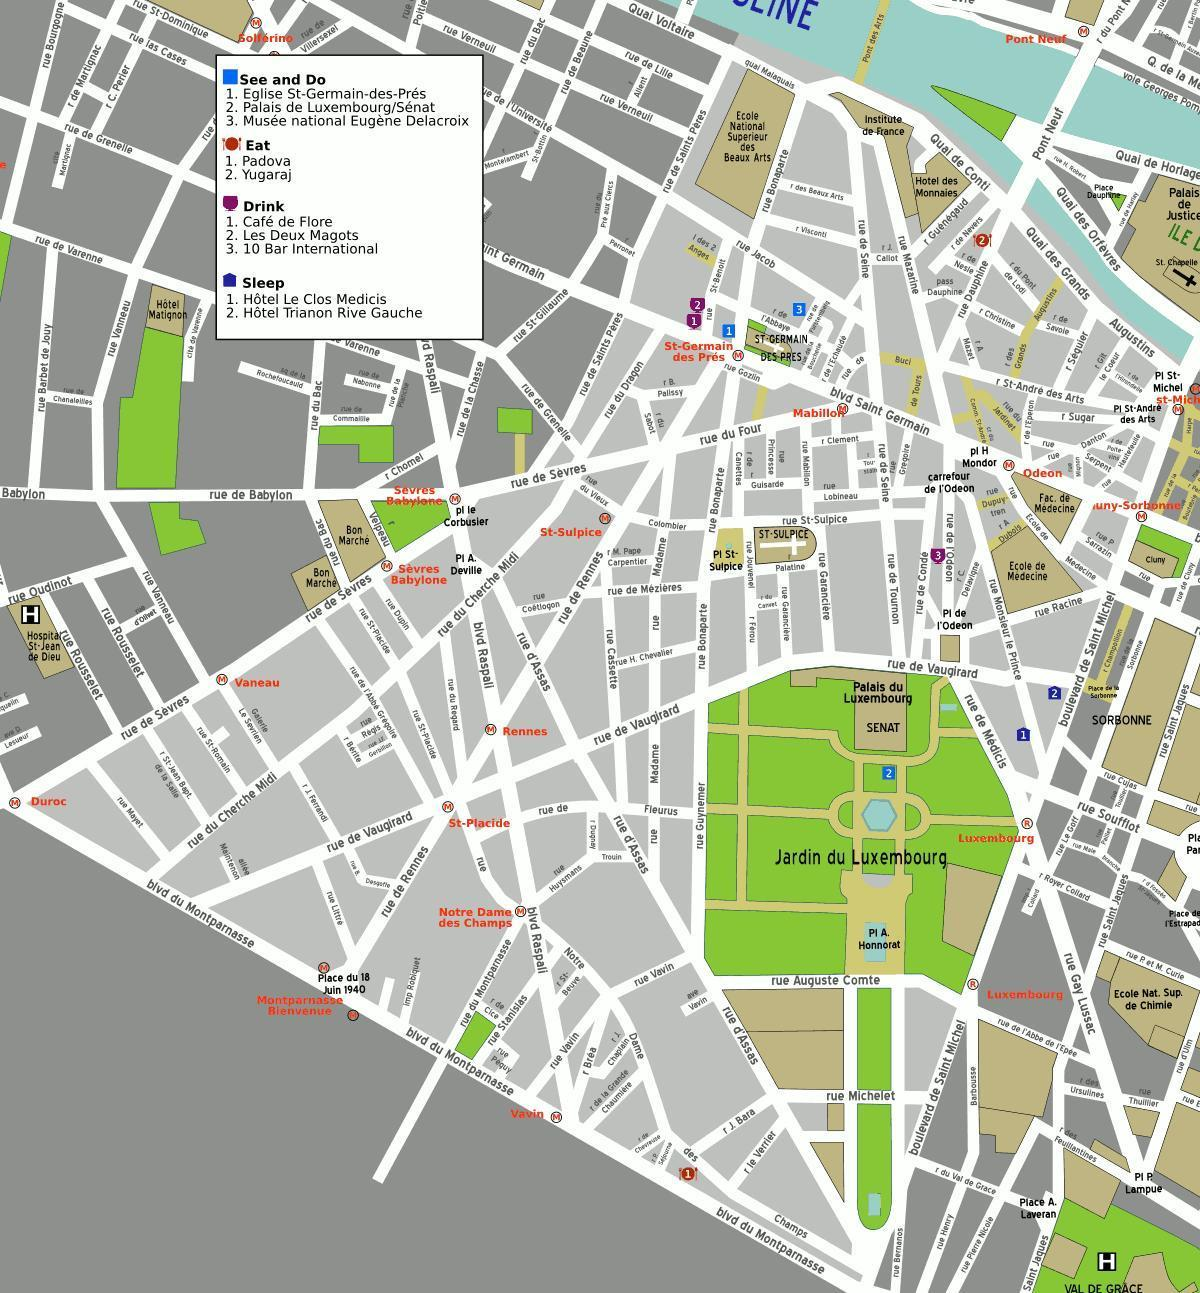 Map of 6th arrondissement Paris